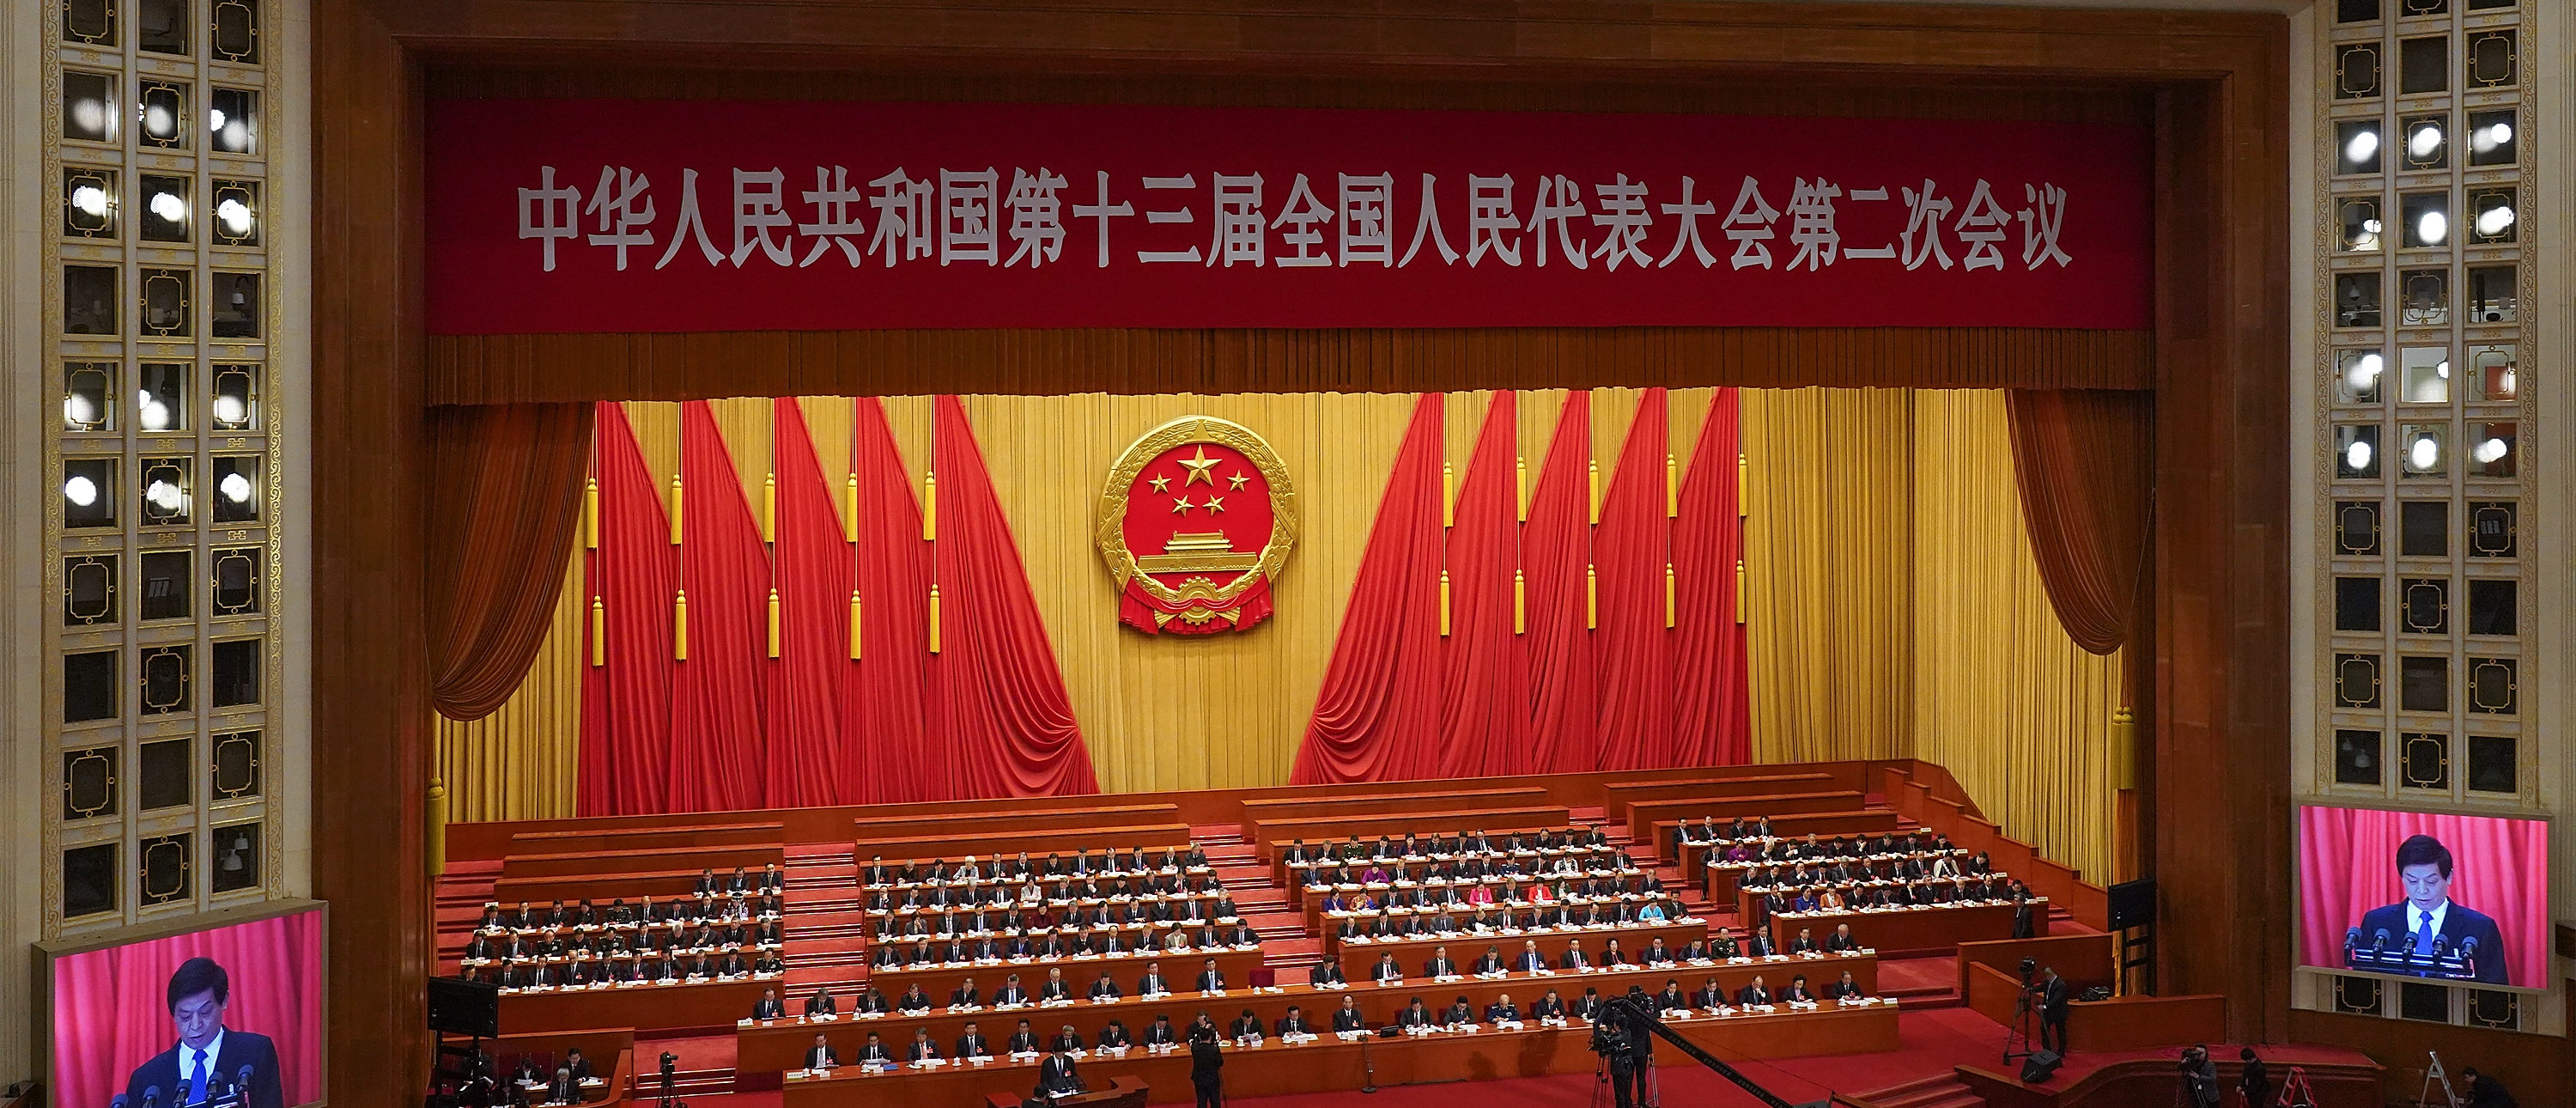 BEIJING, CHINA - MARCH 08: Chairman of the Standing Committee of the National People's Congress (NPC) of China, Li Zhanshu, delivers a speech during the second plenary meeting of the NPC at The Great Hall Of The People on March 8, 2019 in Beijing, China. (Photo by Andrea Verdelli/Getty Images)